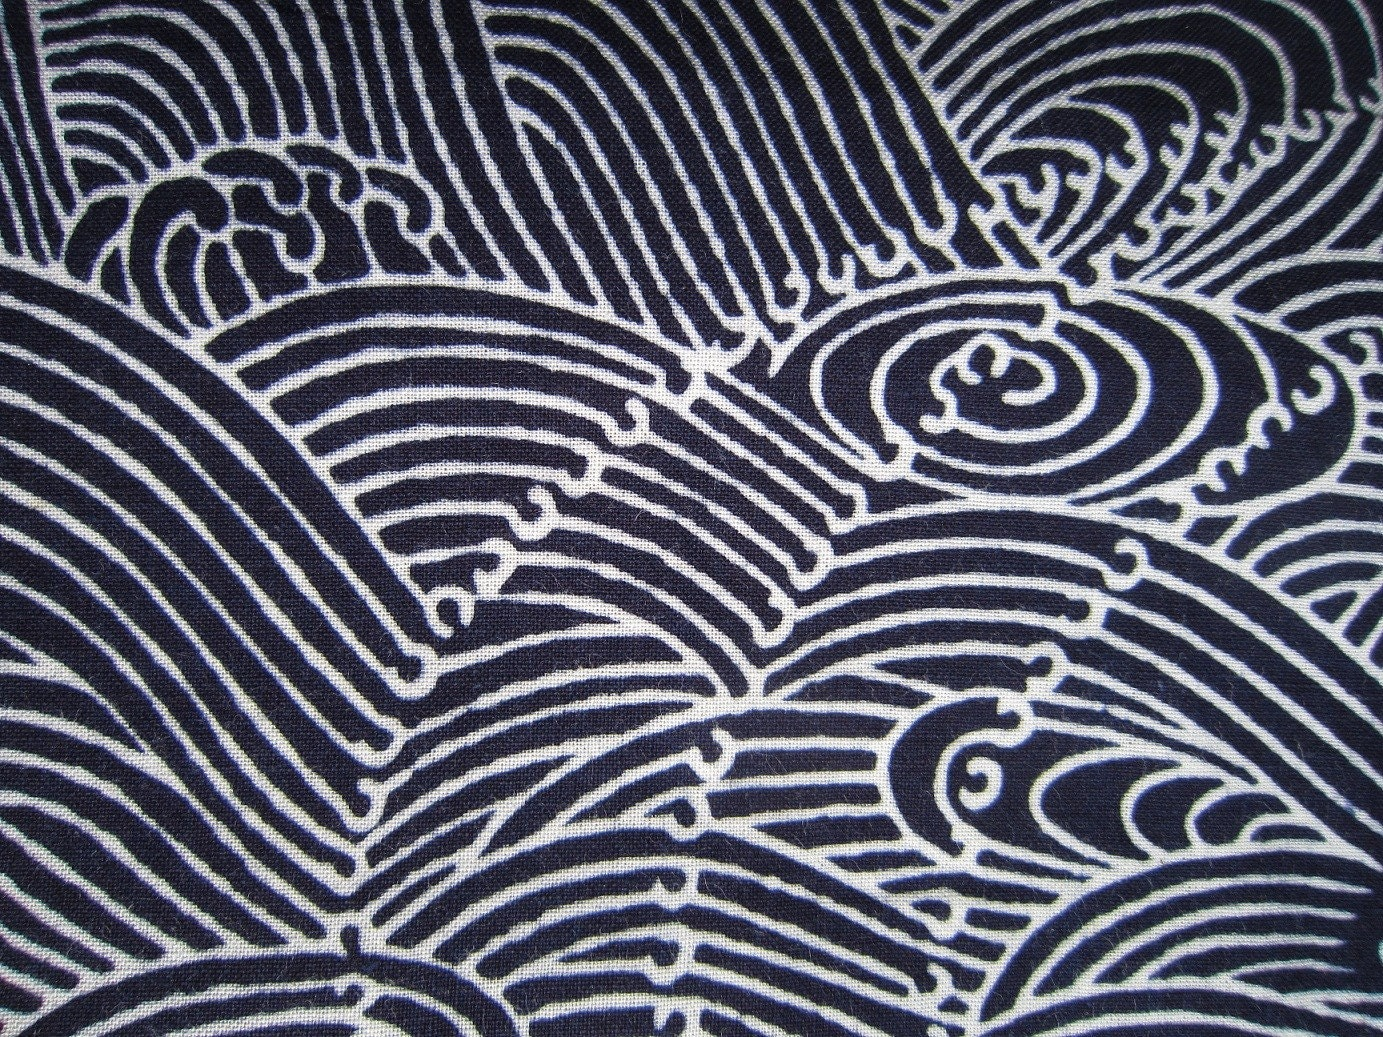 Indigo blue ocean vintage Japanese cotton yukata fabric